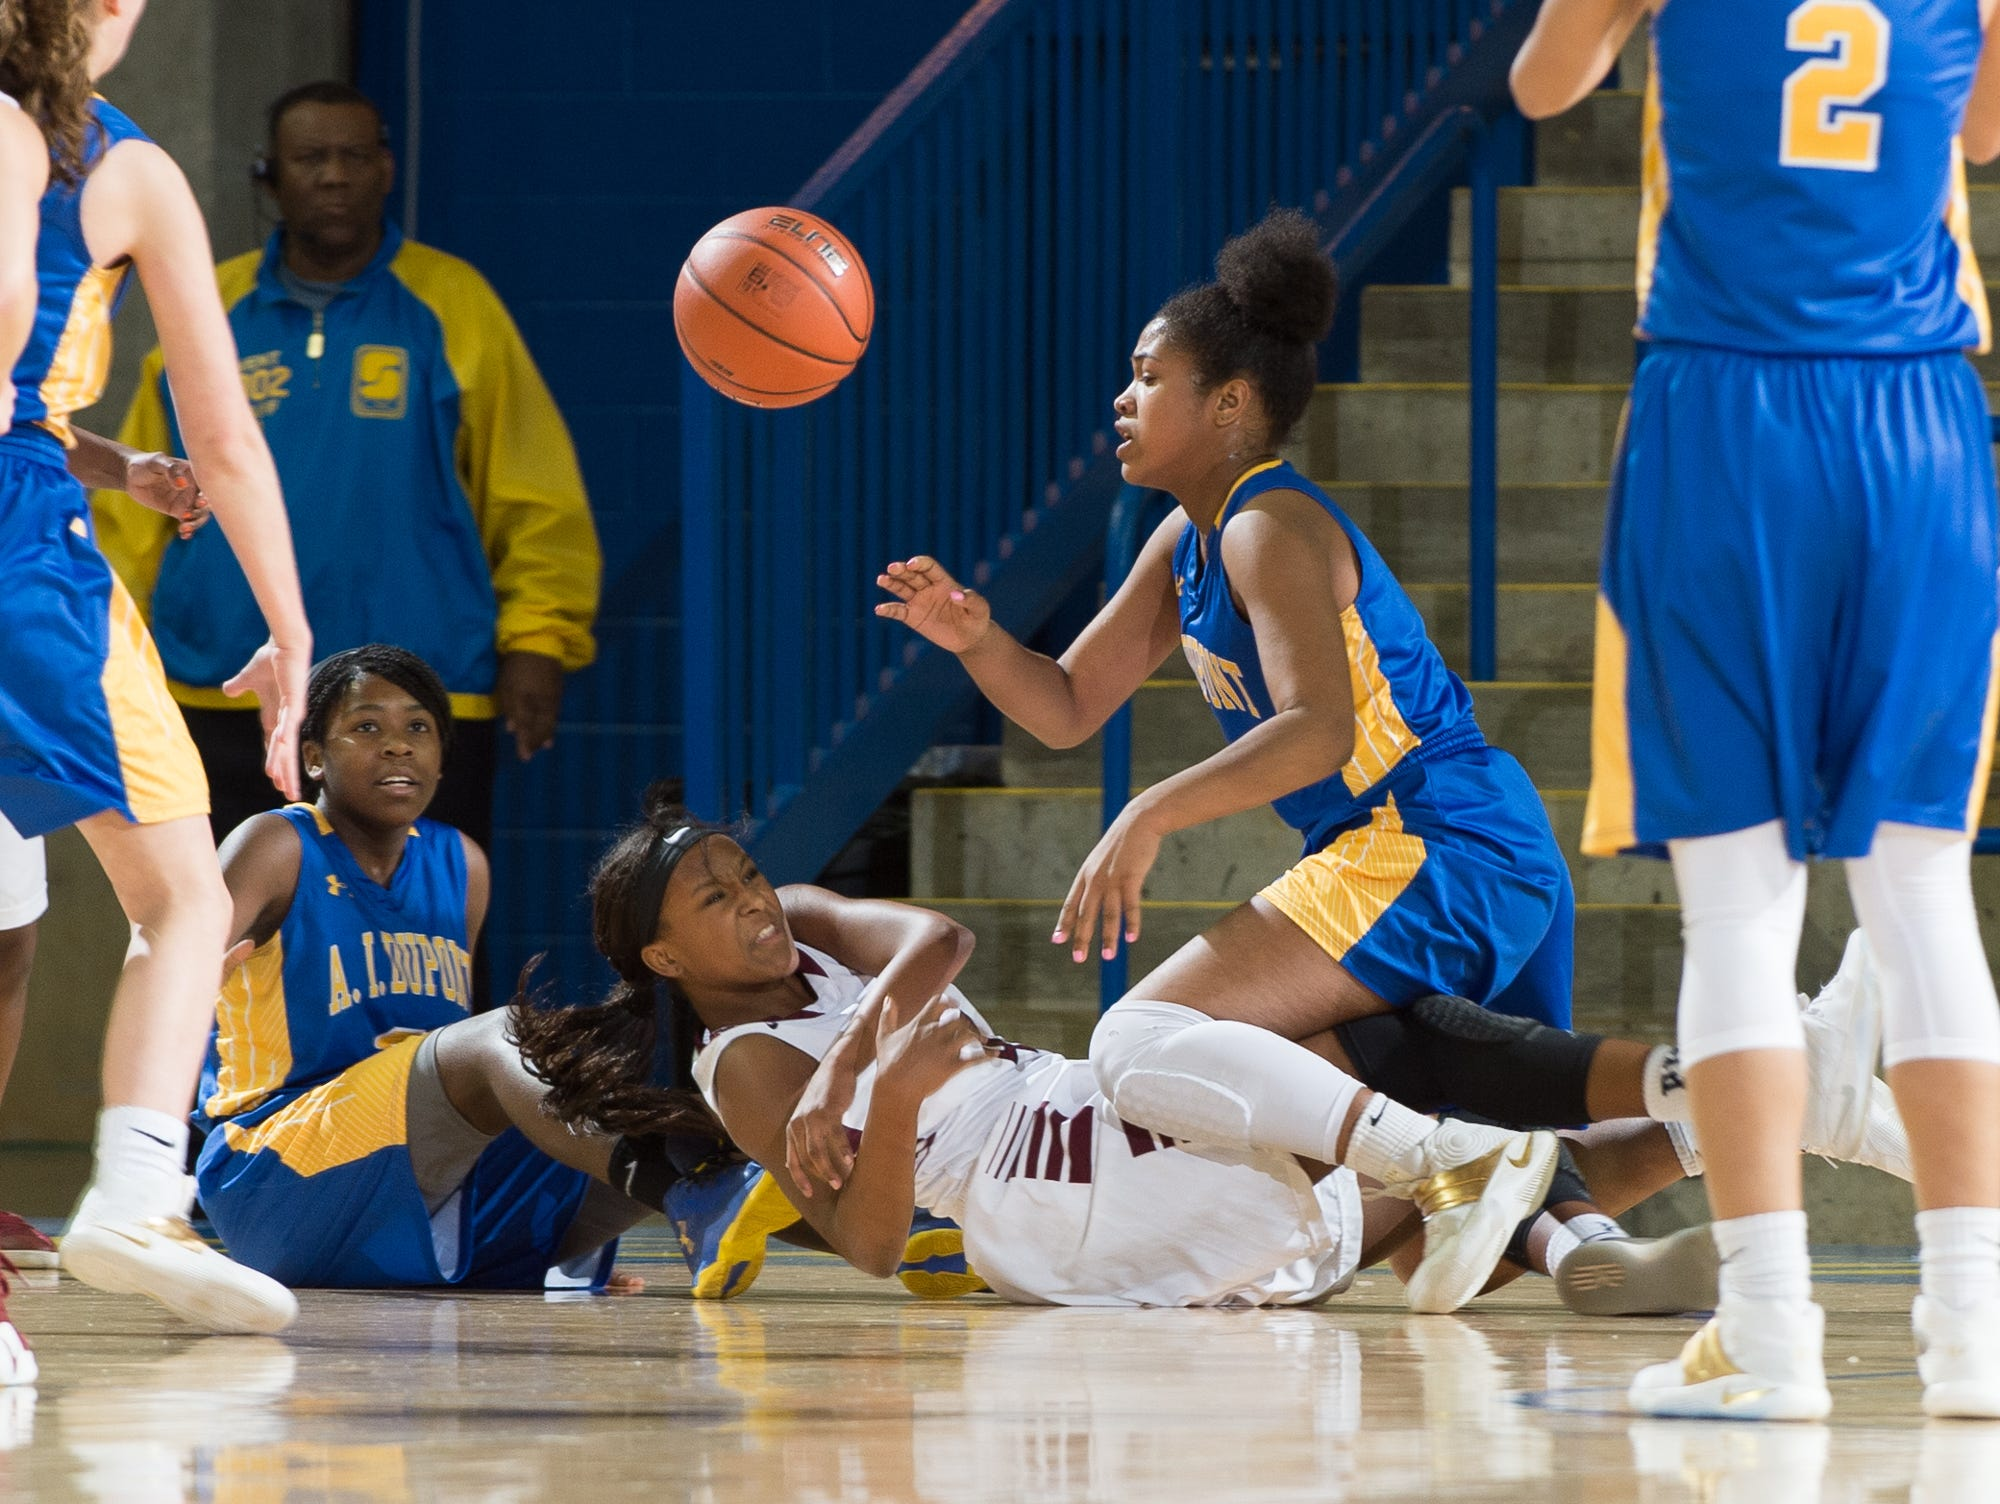 Ball gets loose during the quarterfinals of DIAA Girls Basketball Tournament at the University of Delaware.